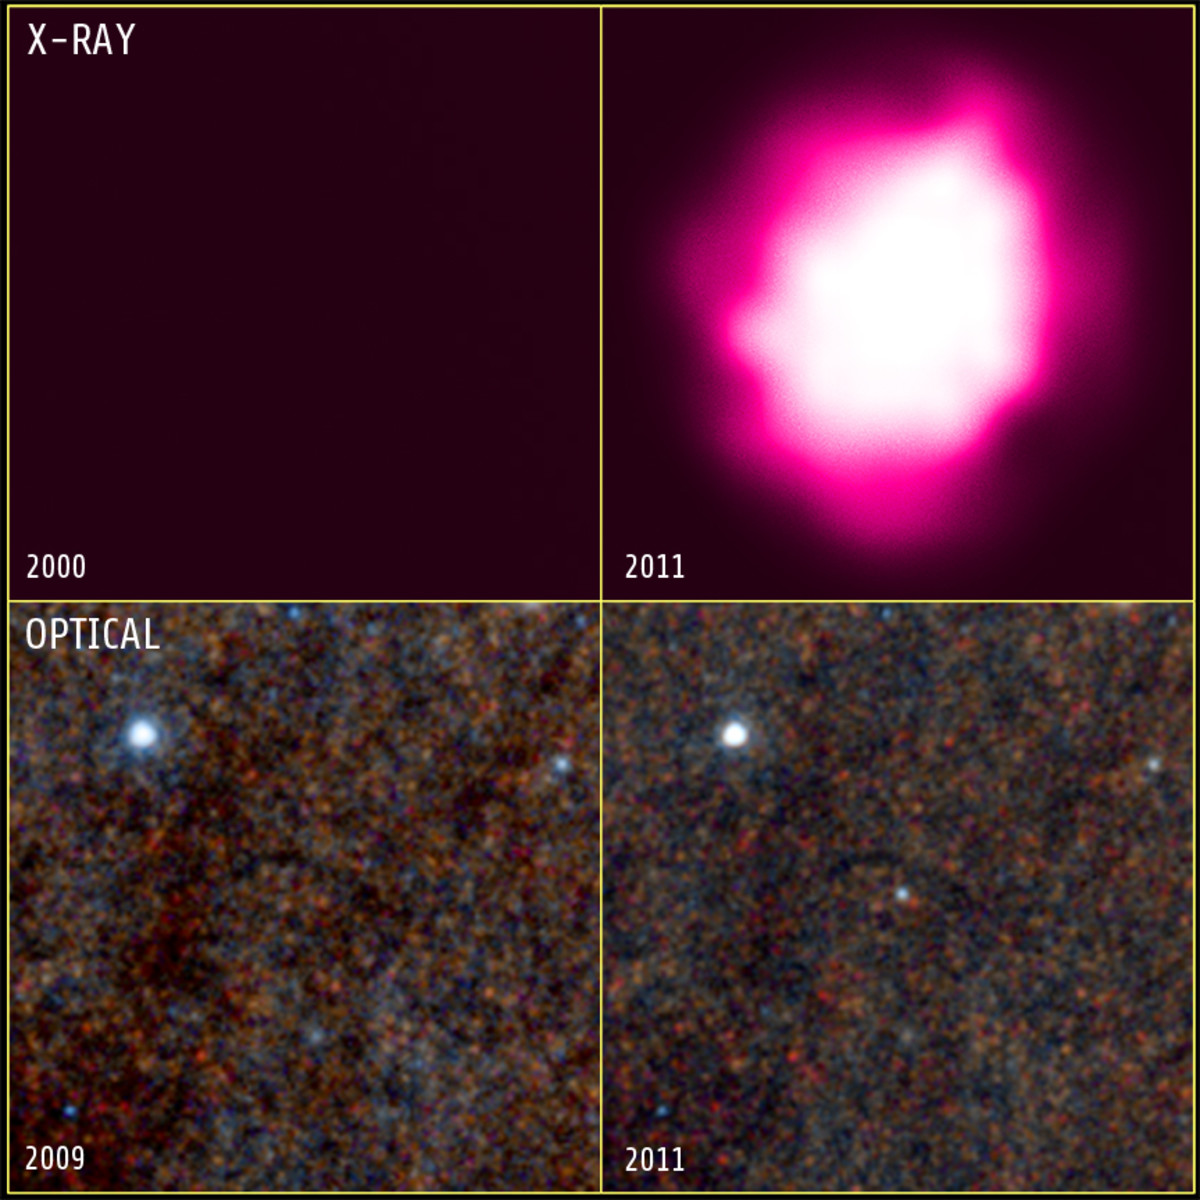 Close-up before-and-after photos of the black hole in the X-ray and visible light wavelengths. Notice the extra blue dot in visible light in the lower right photo: that's the glowing disc around the black hole.